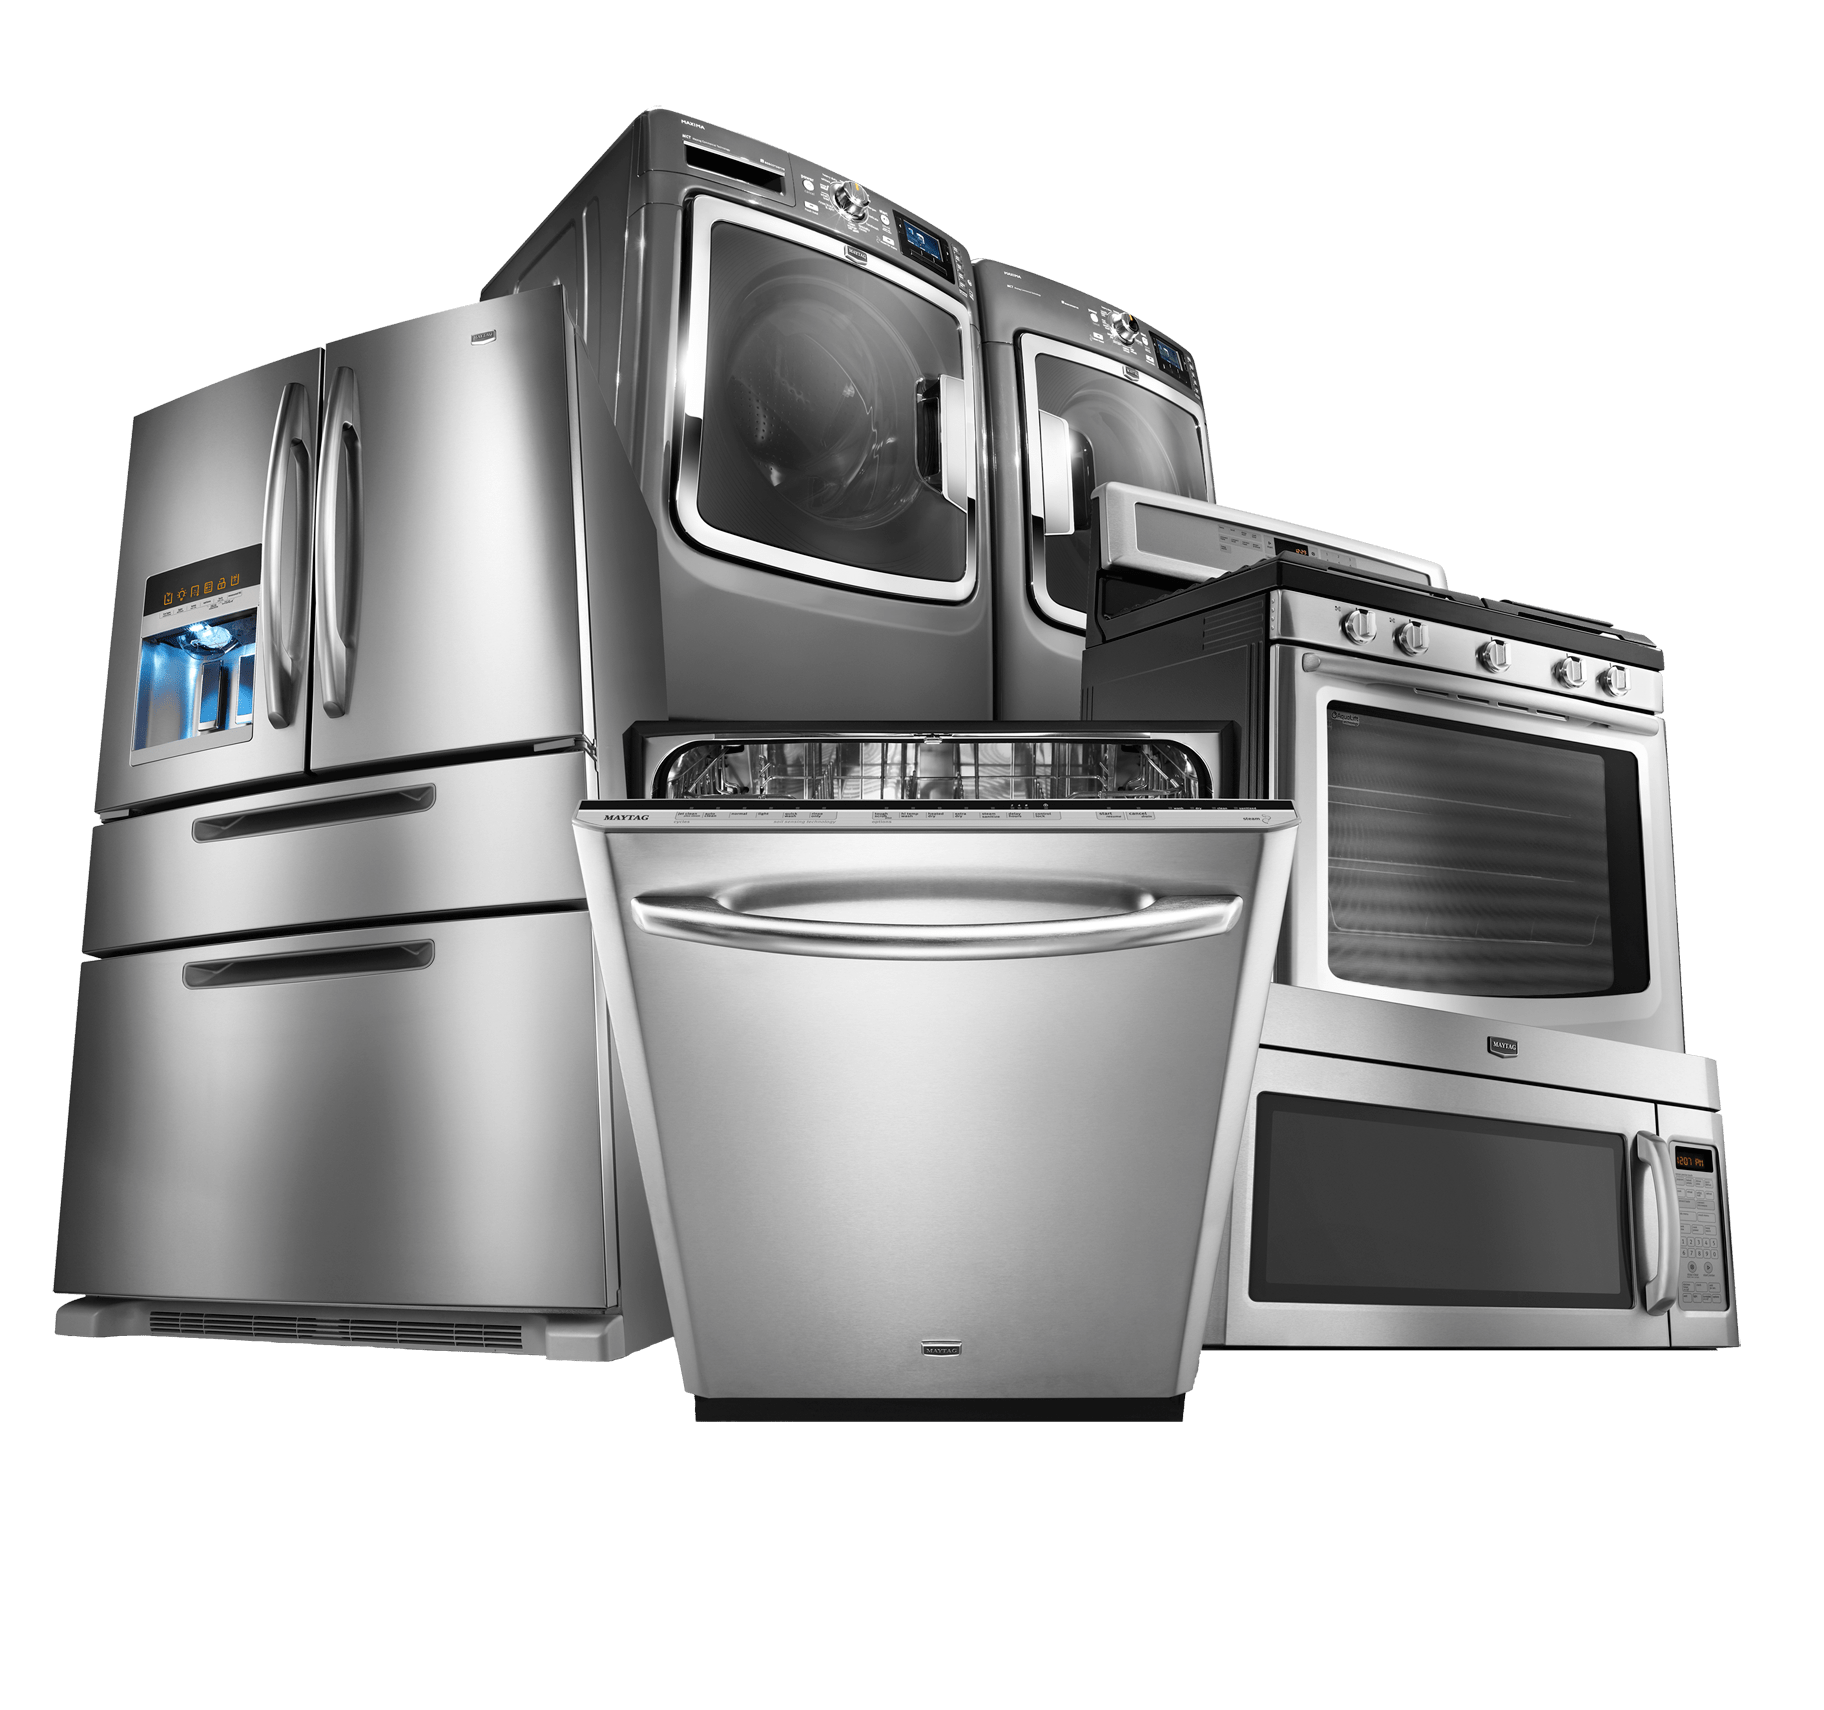 Download Home Appliances Latest Version 2018 28234  Free